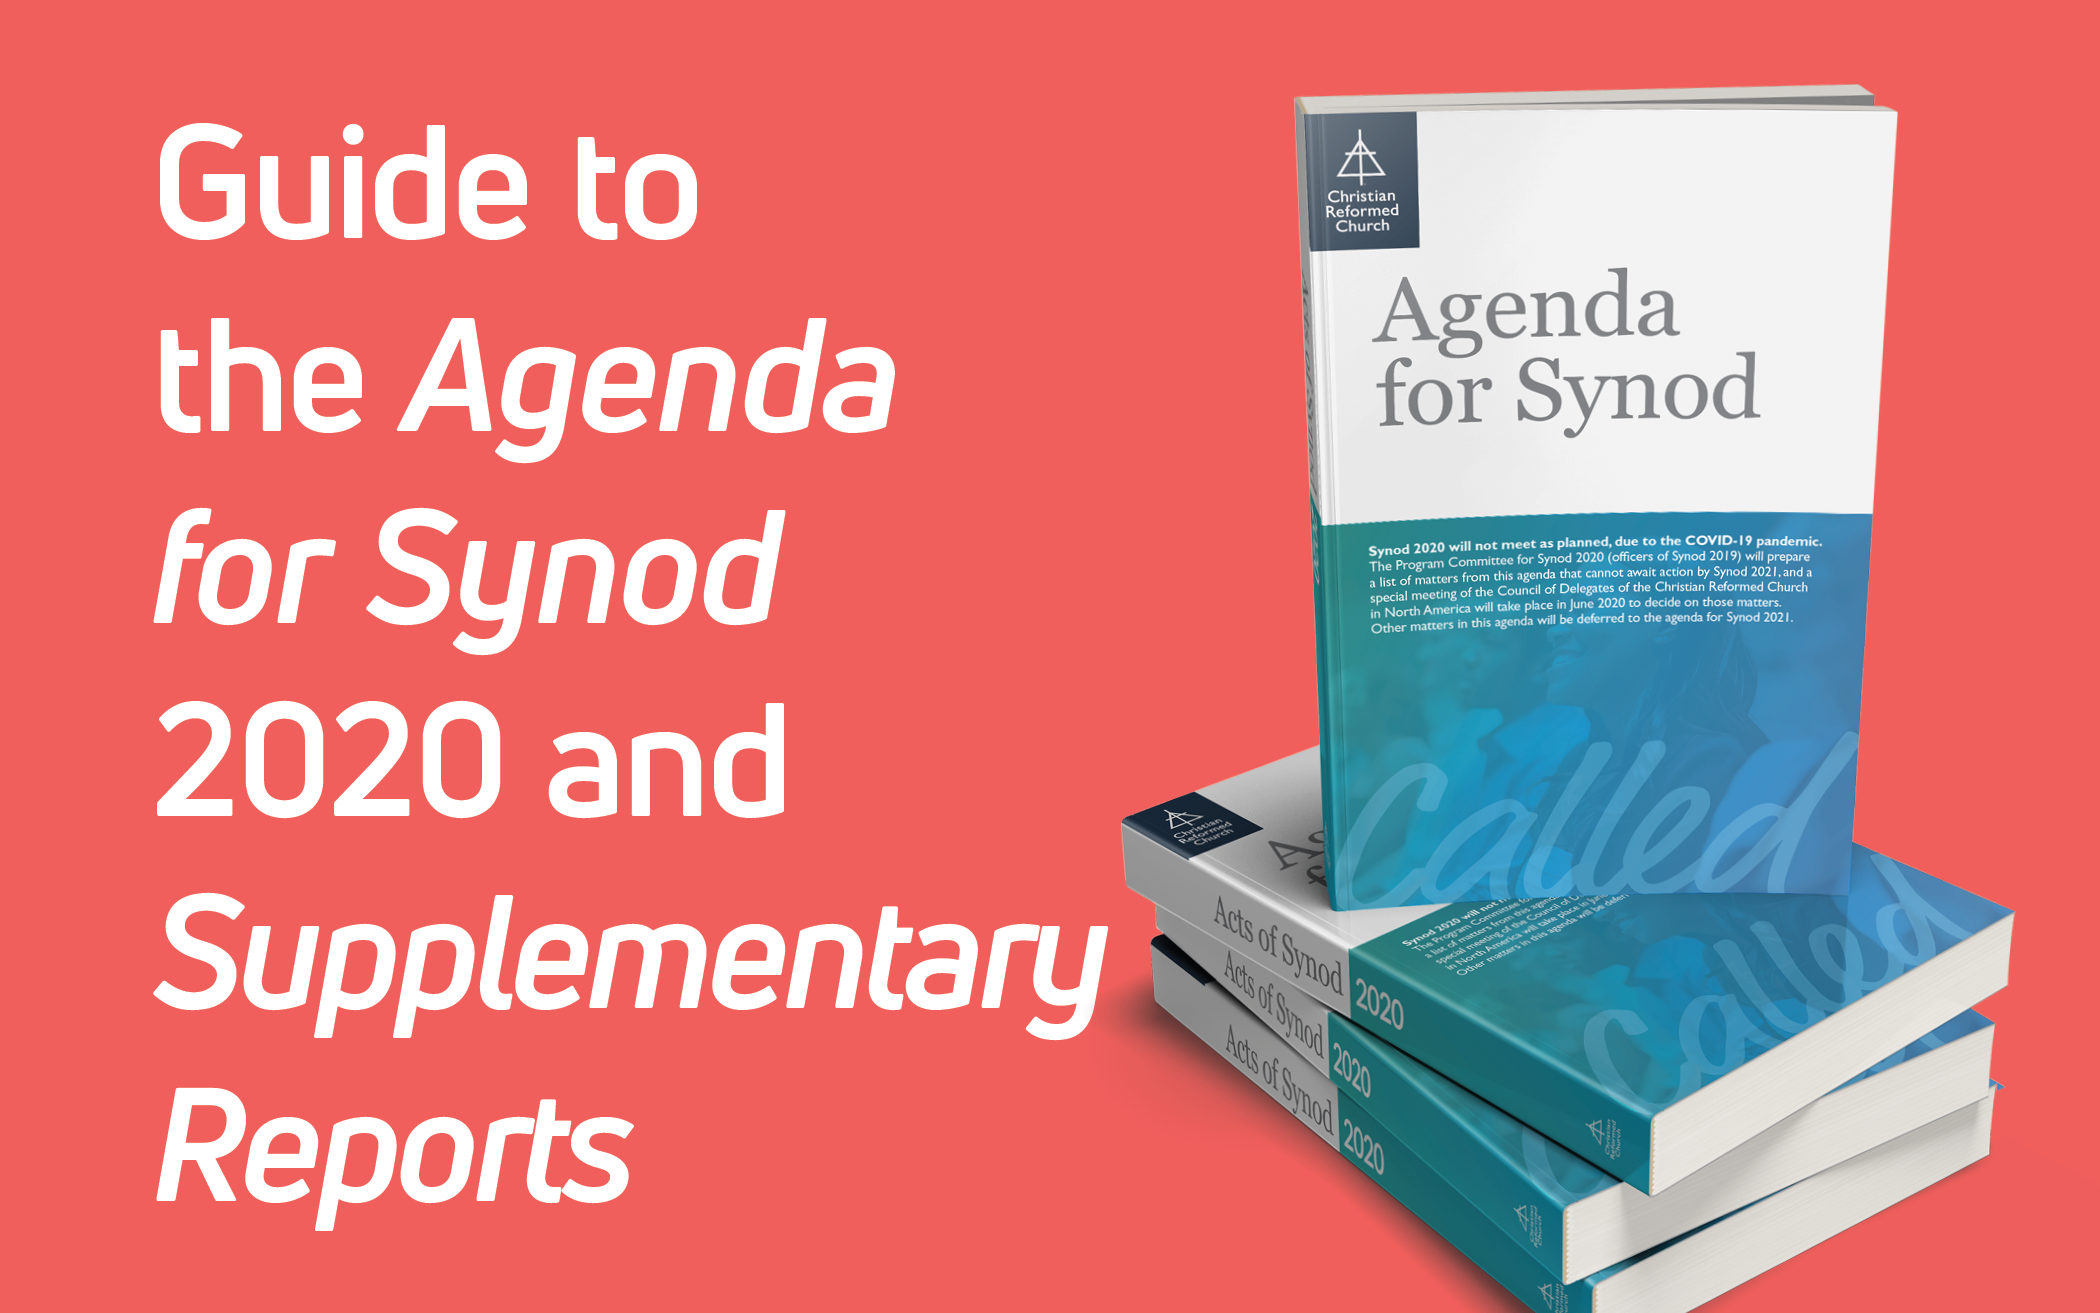 Guide to the Agenda for Synod 2020